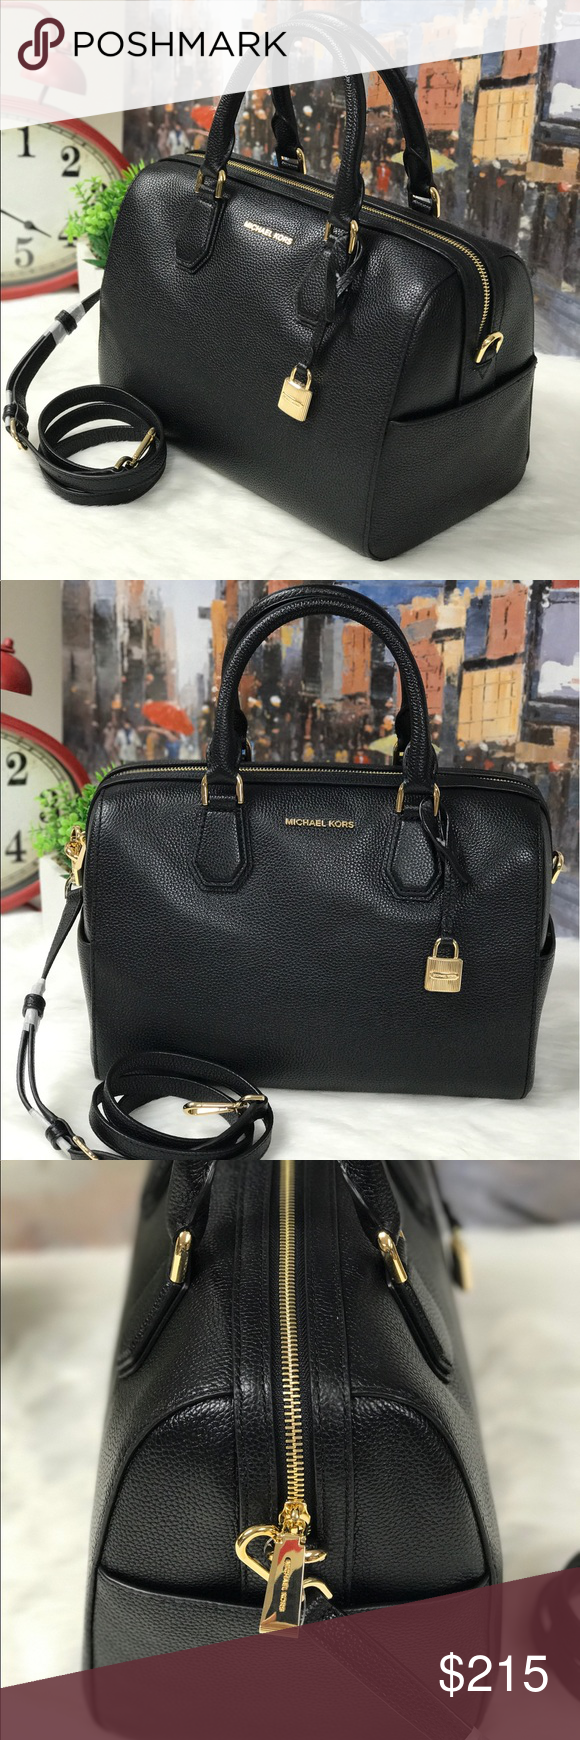 9a50f1b44379 MICHAEL KORS MERCER DUFFLE BAG This elegant bag is made with high quality  leather